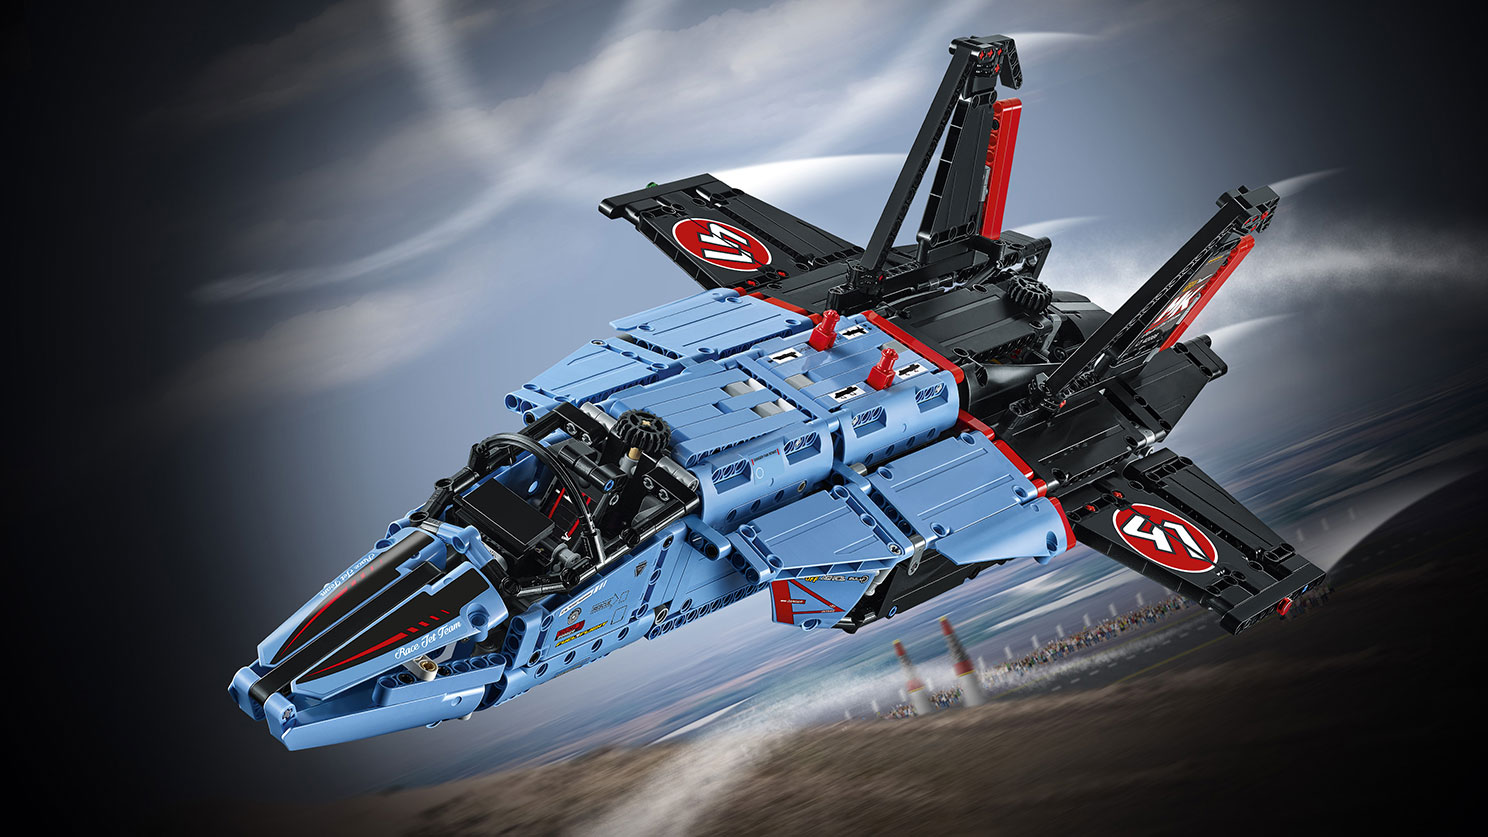 LEGO Technic - 42066 Air Race Jet -  The Air Race Jet features an awesome blue, black and red color scheme with cool racing stickers and an array of authentic details and exciting motorized functions.